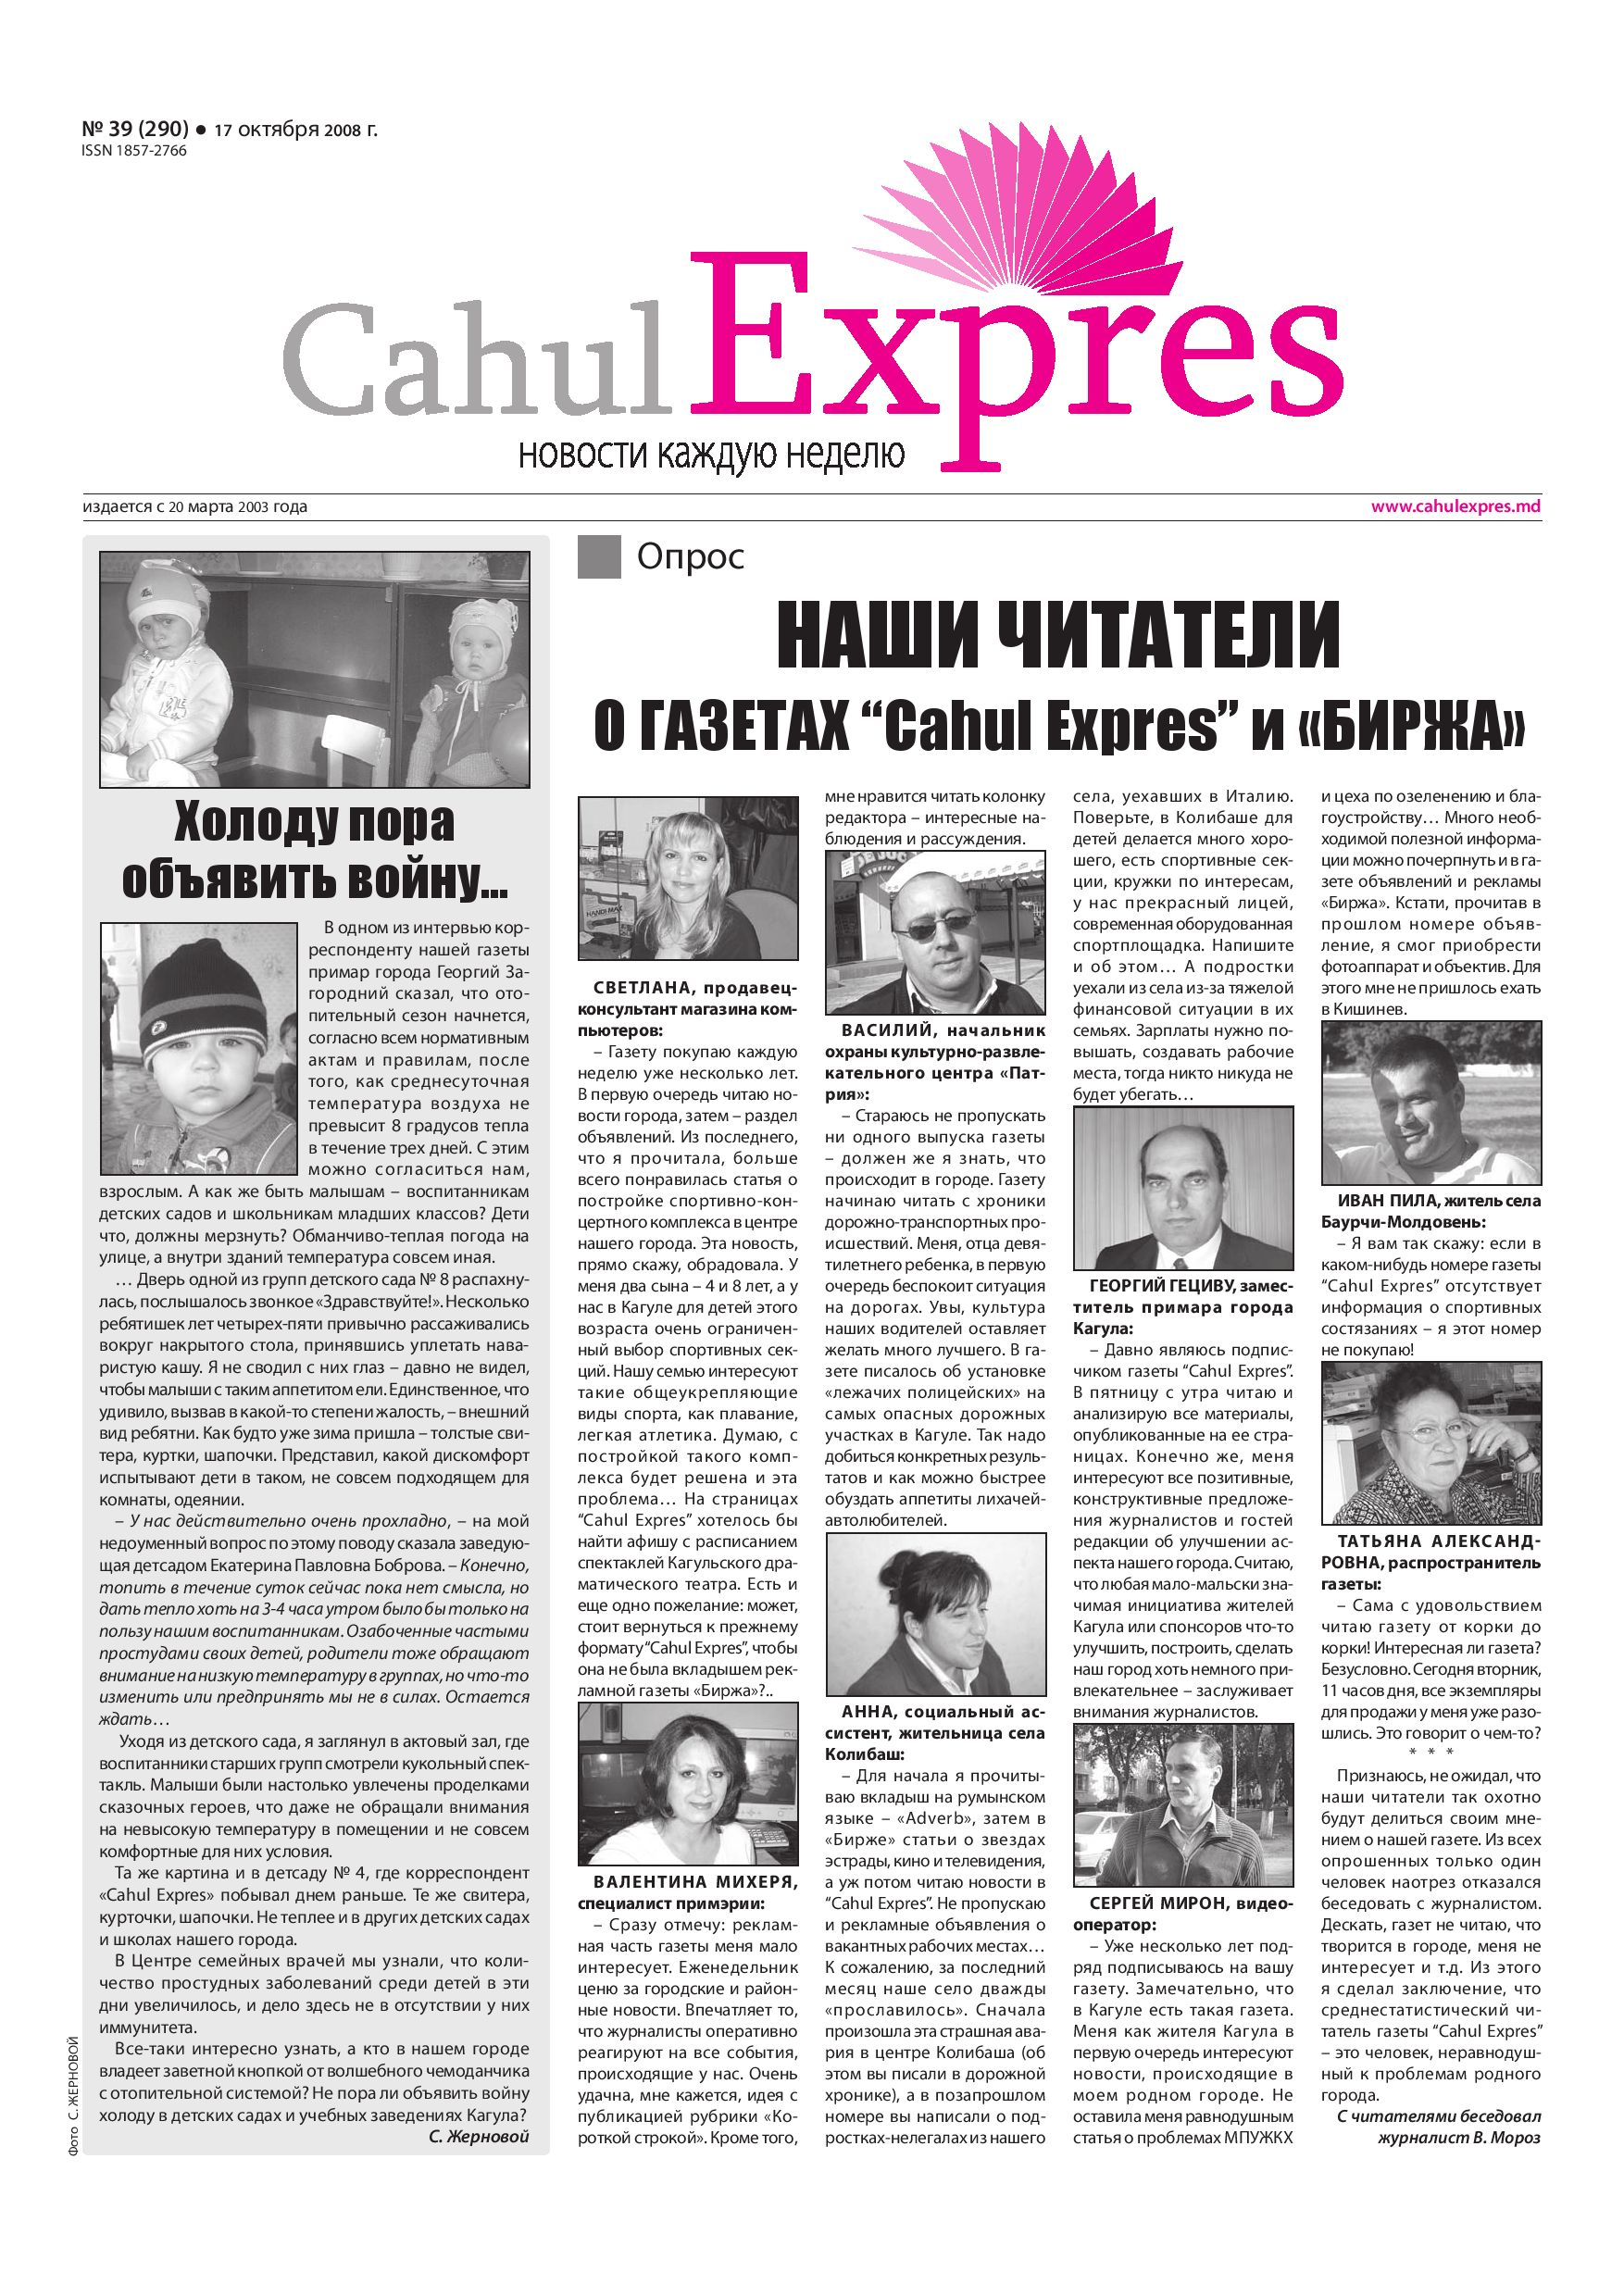 Discover cahul